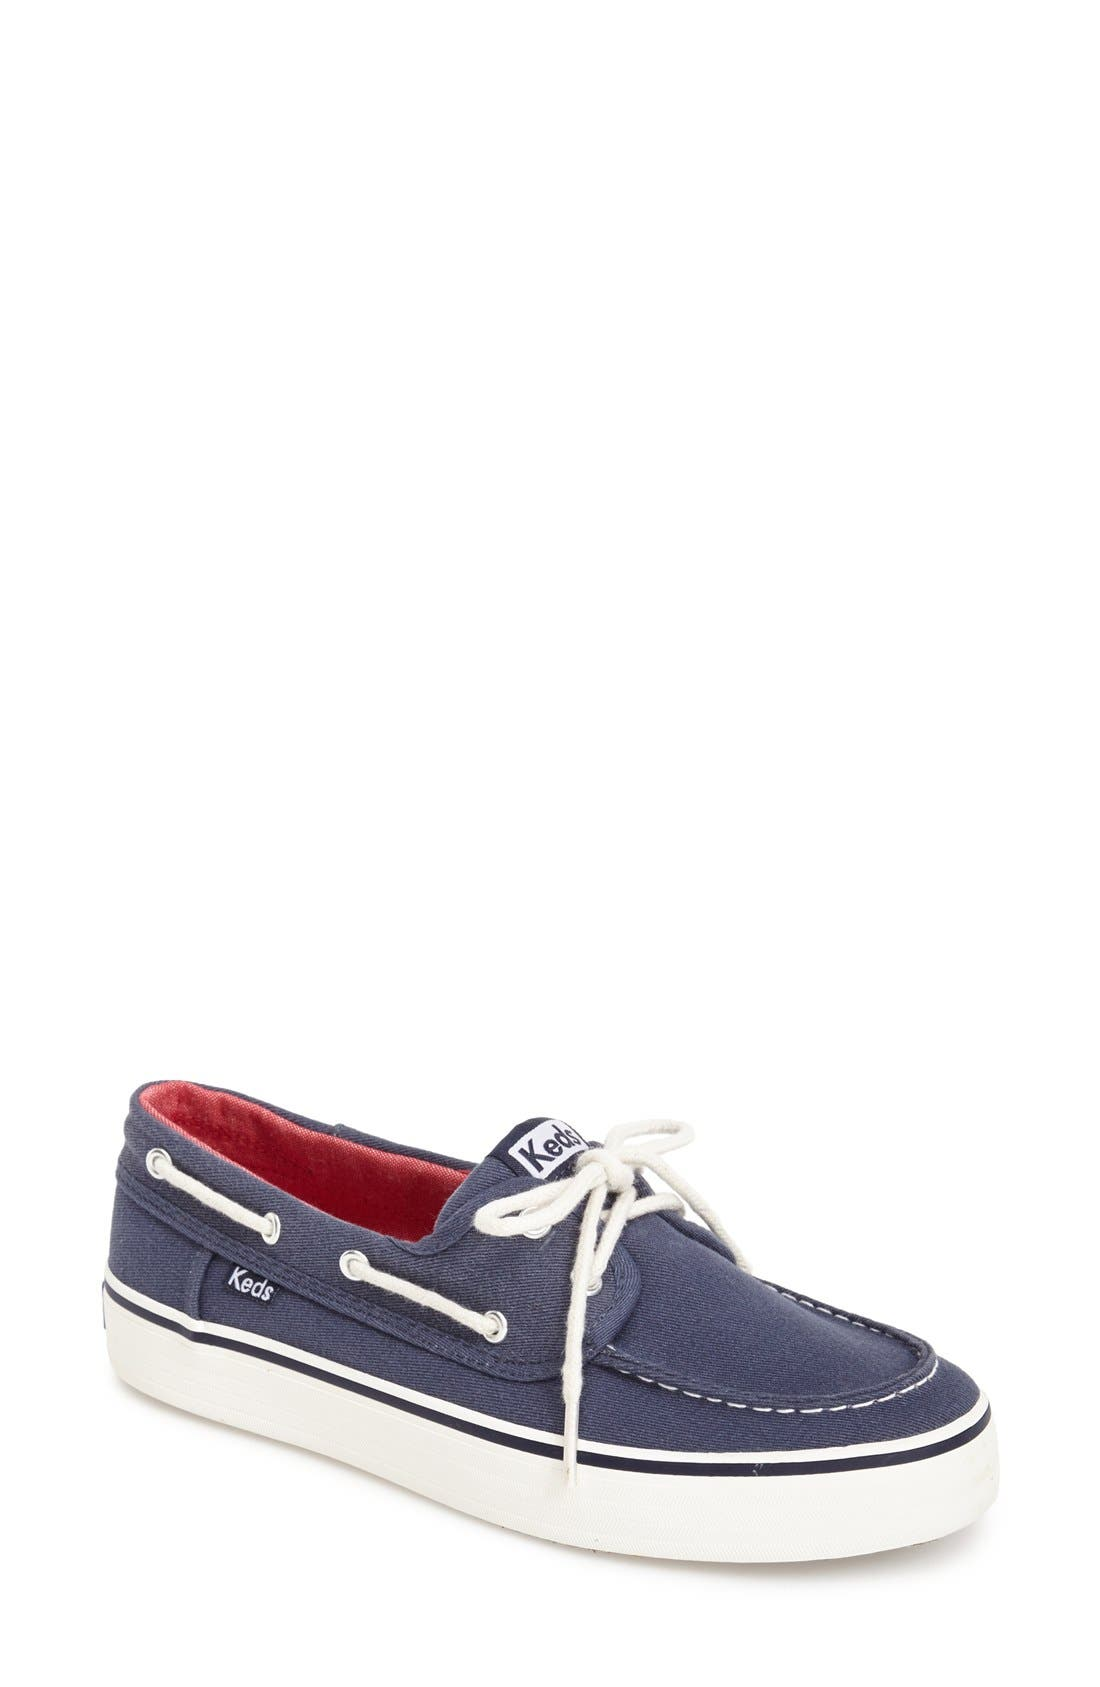 Main Image - Keds® 'Bay Bird' Boat Shoe Sneaker (Women)